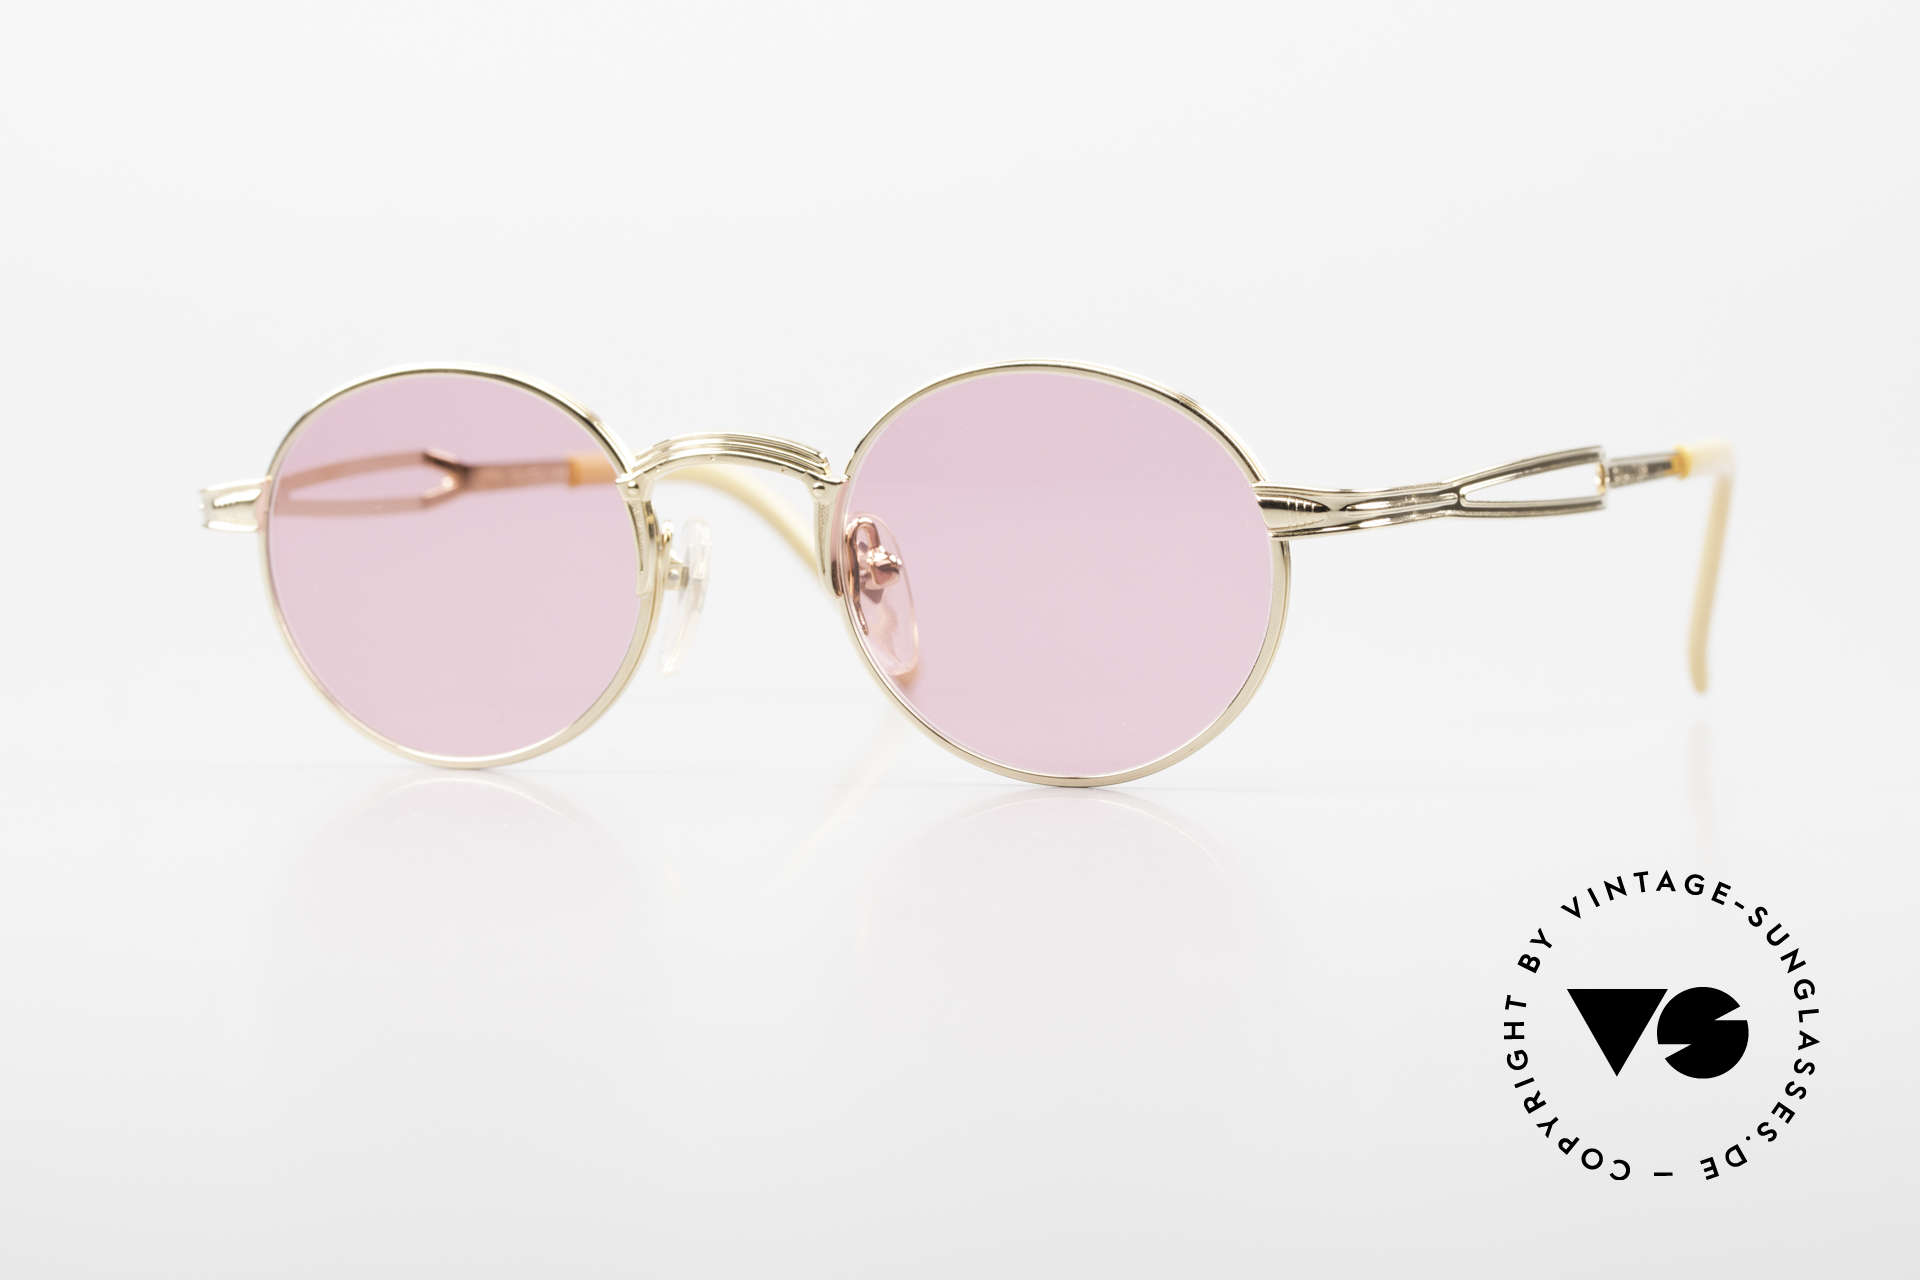 Jean Paul Gaultier 55-7107 Pink Round Glasses Gold Plated, pink, round vintage shades by Jean Paul GAULTIER, Made for Men and Women